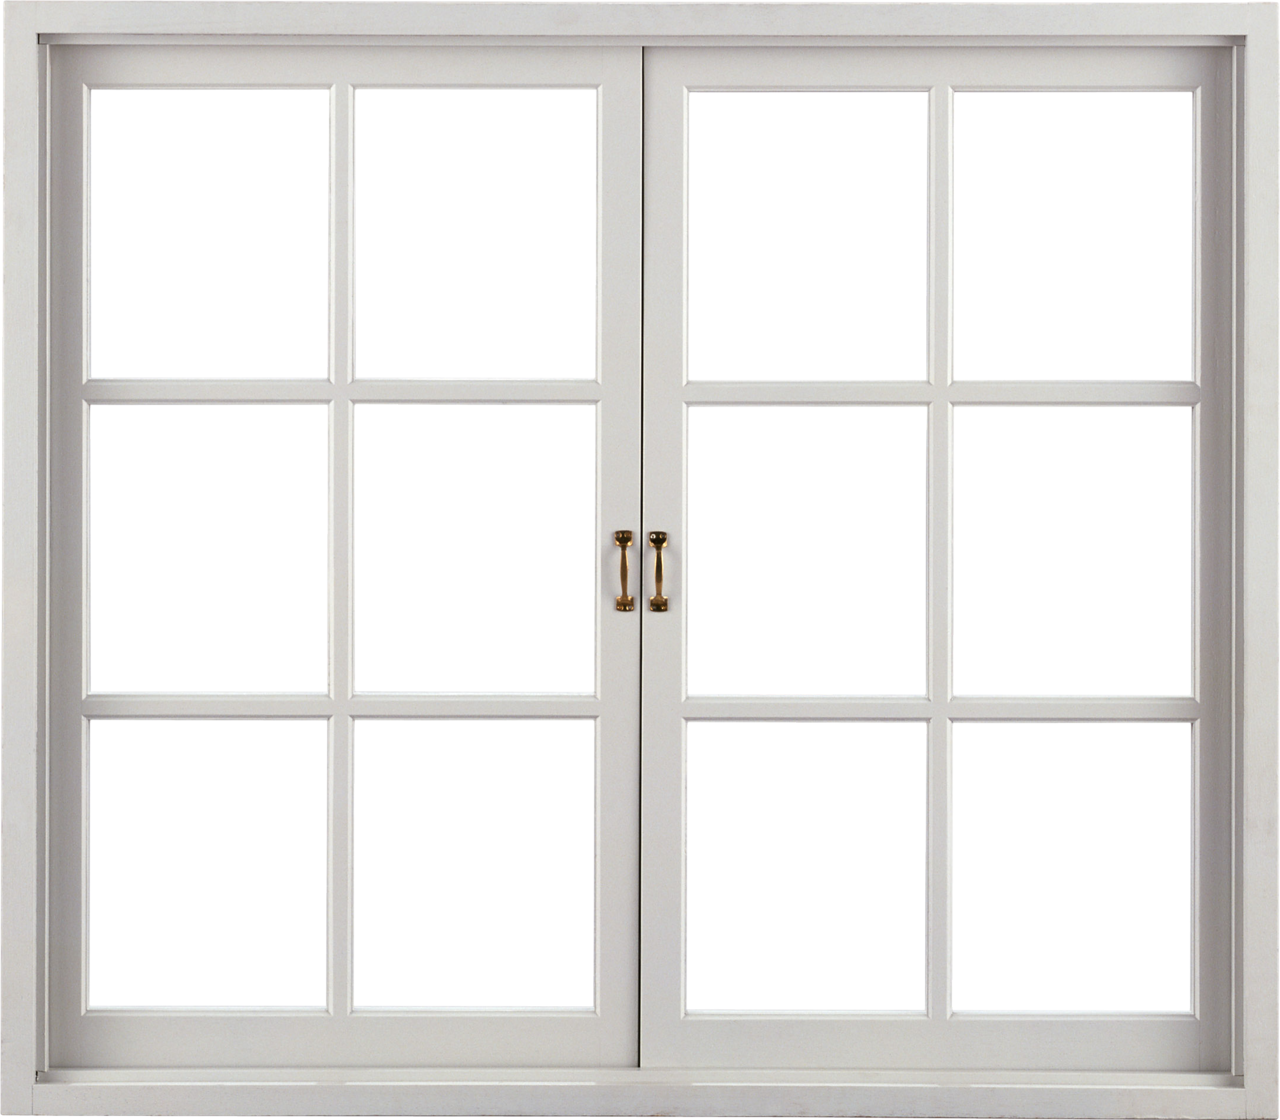 Window clipart transparent background png free Download Window Clipart Transparent Background PNG Image ... png free